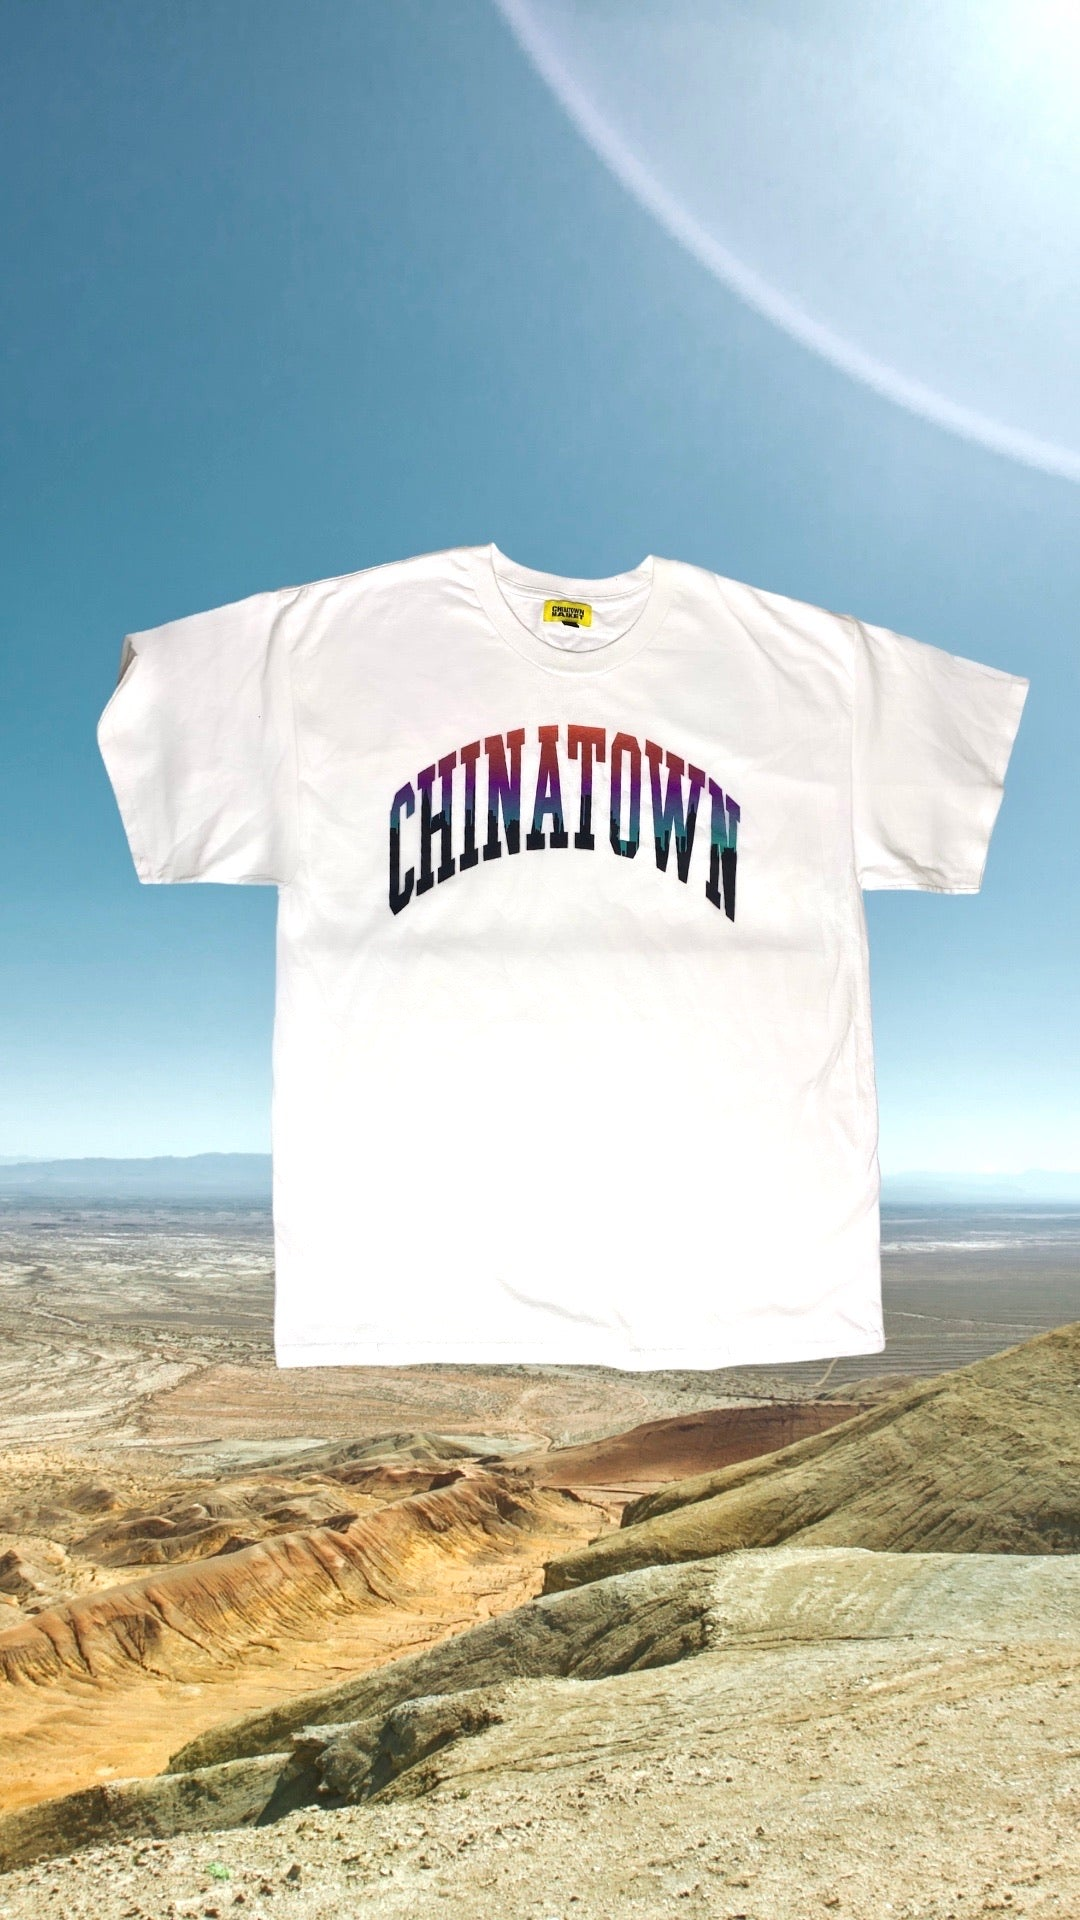 Chinatown Market Arc ombré city Tee